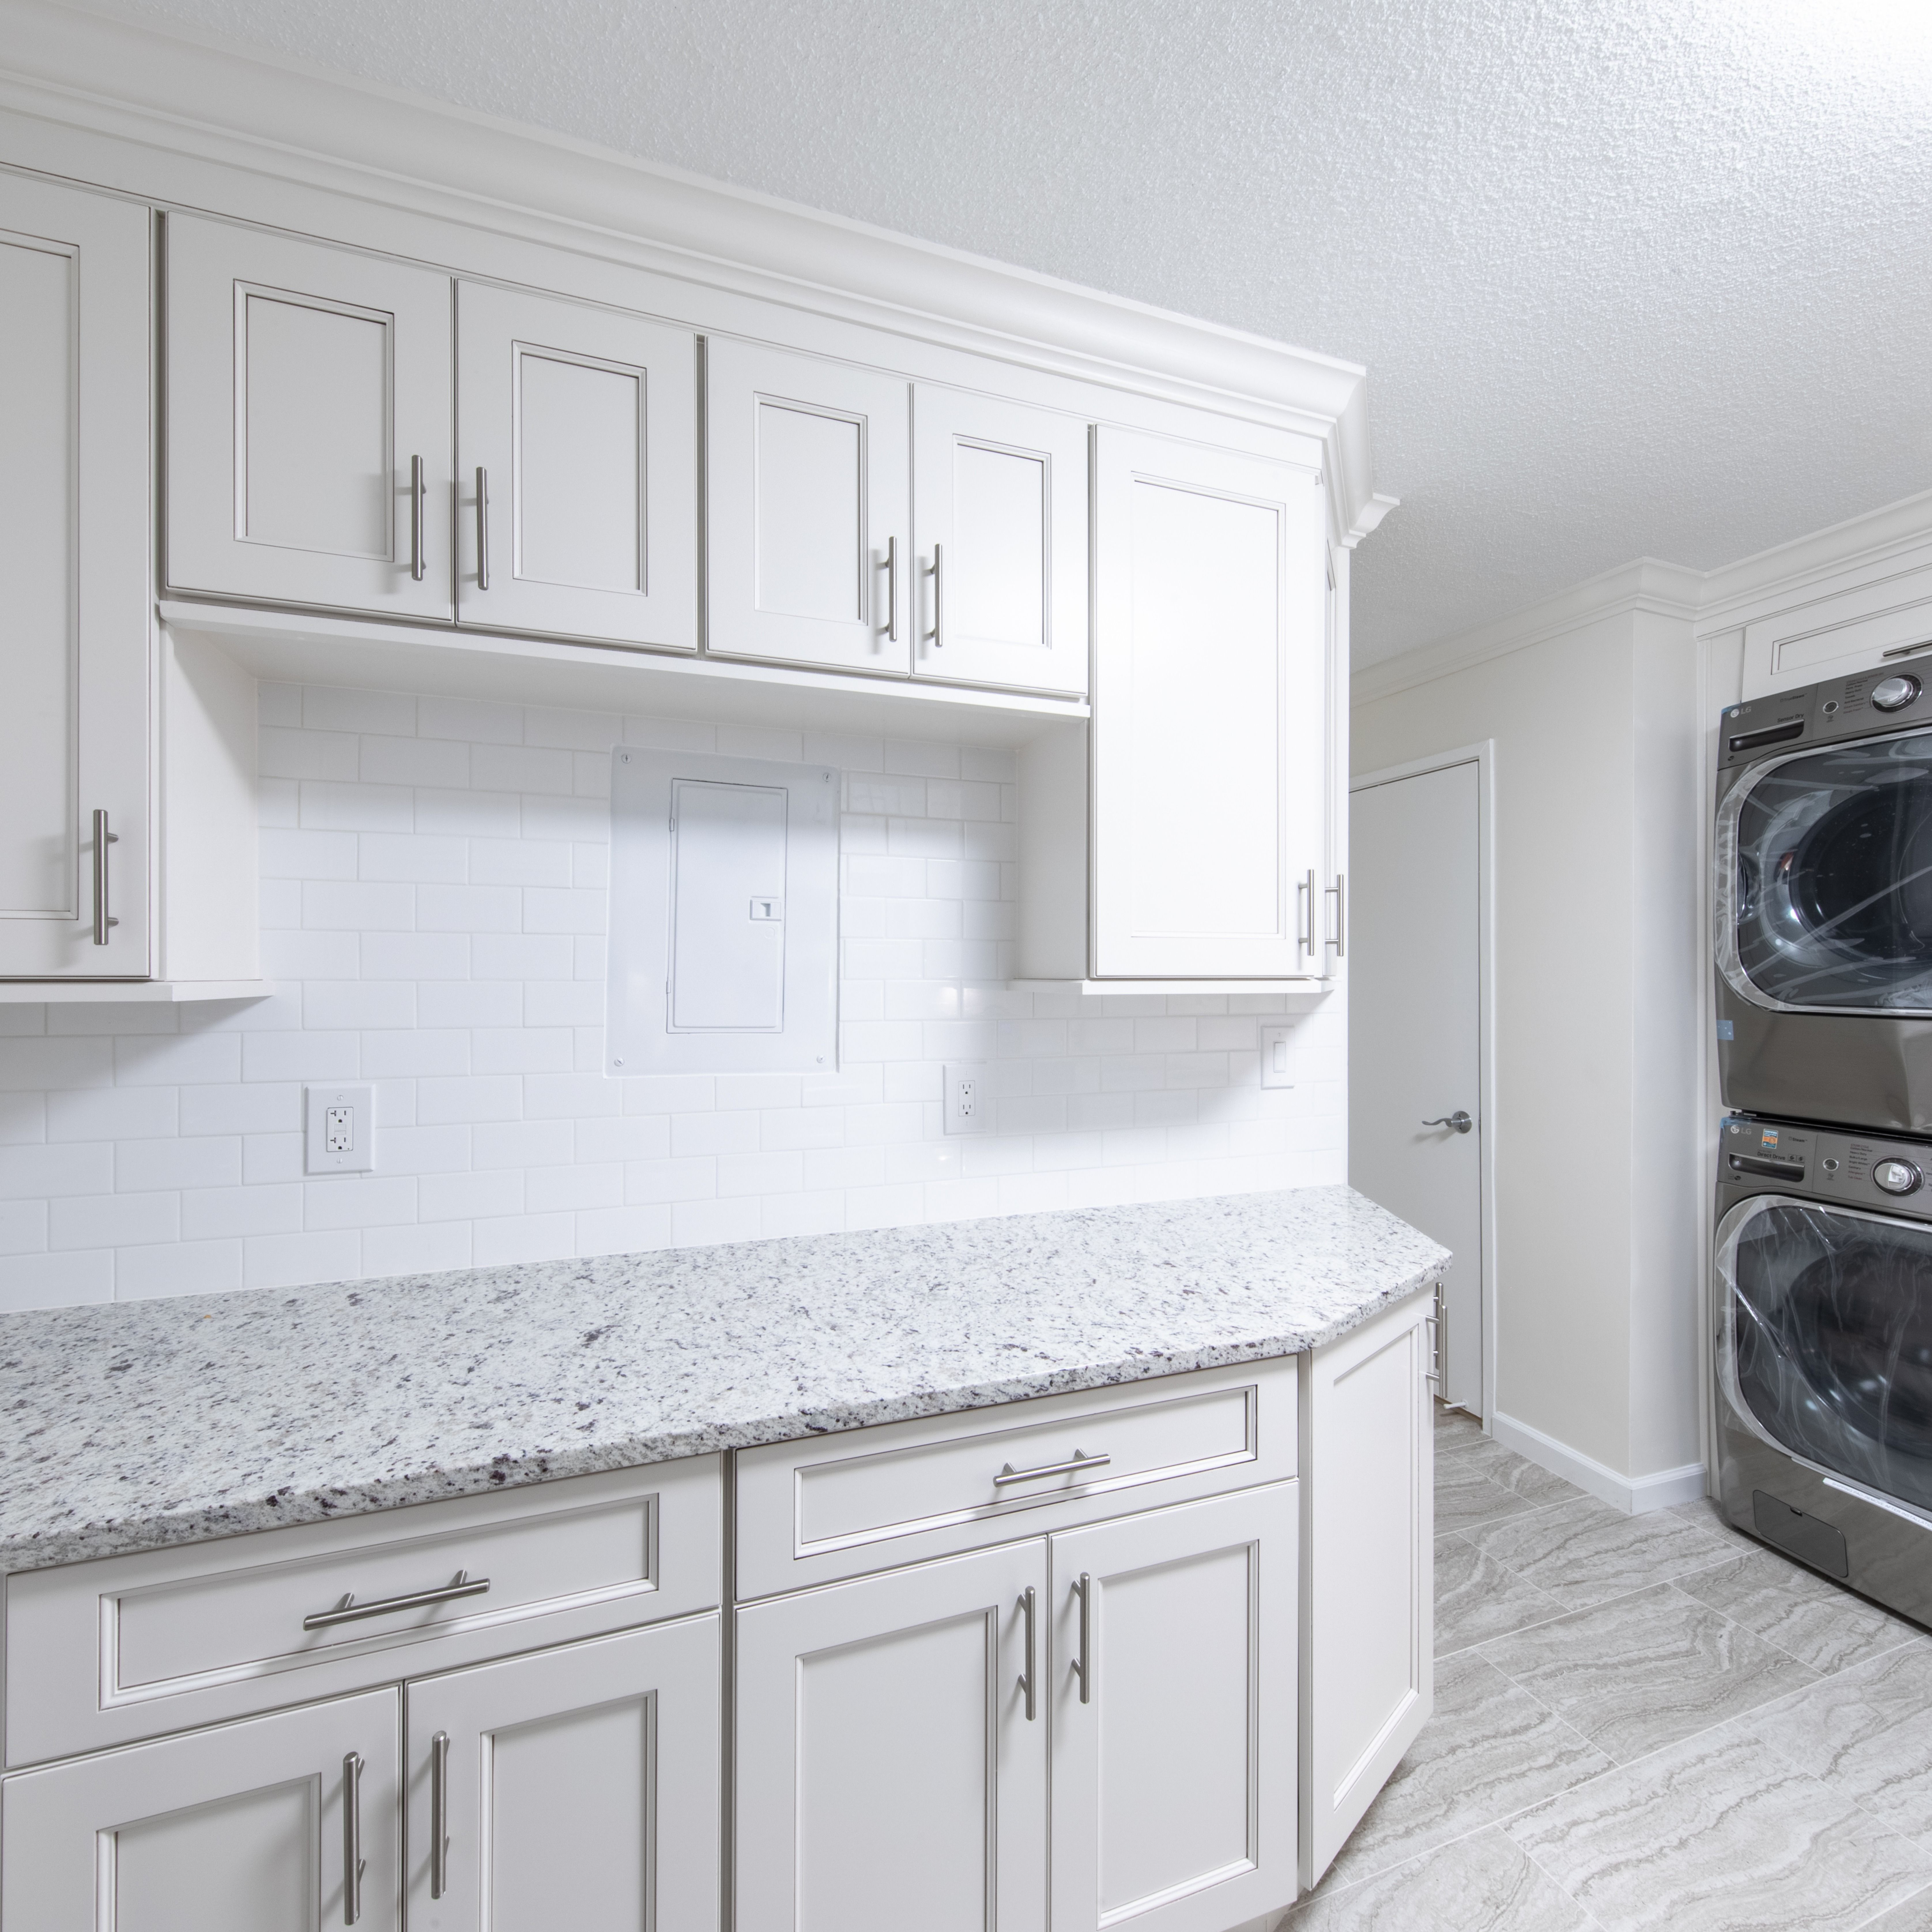 Kitchen And Bathroom Remodeling Contractors: Pin By Mayflower Construction Group On Bathroom Remodeling